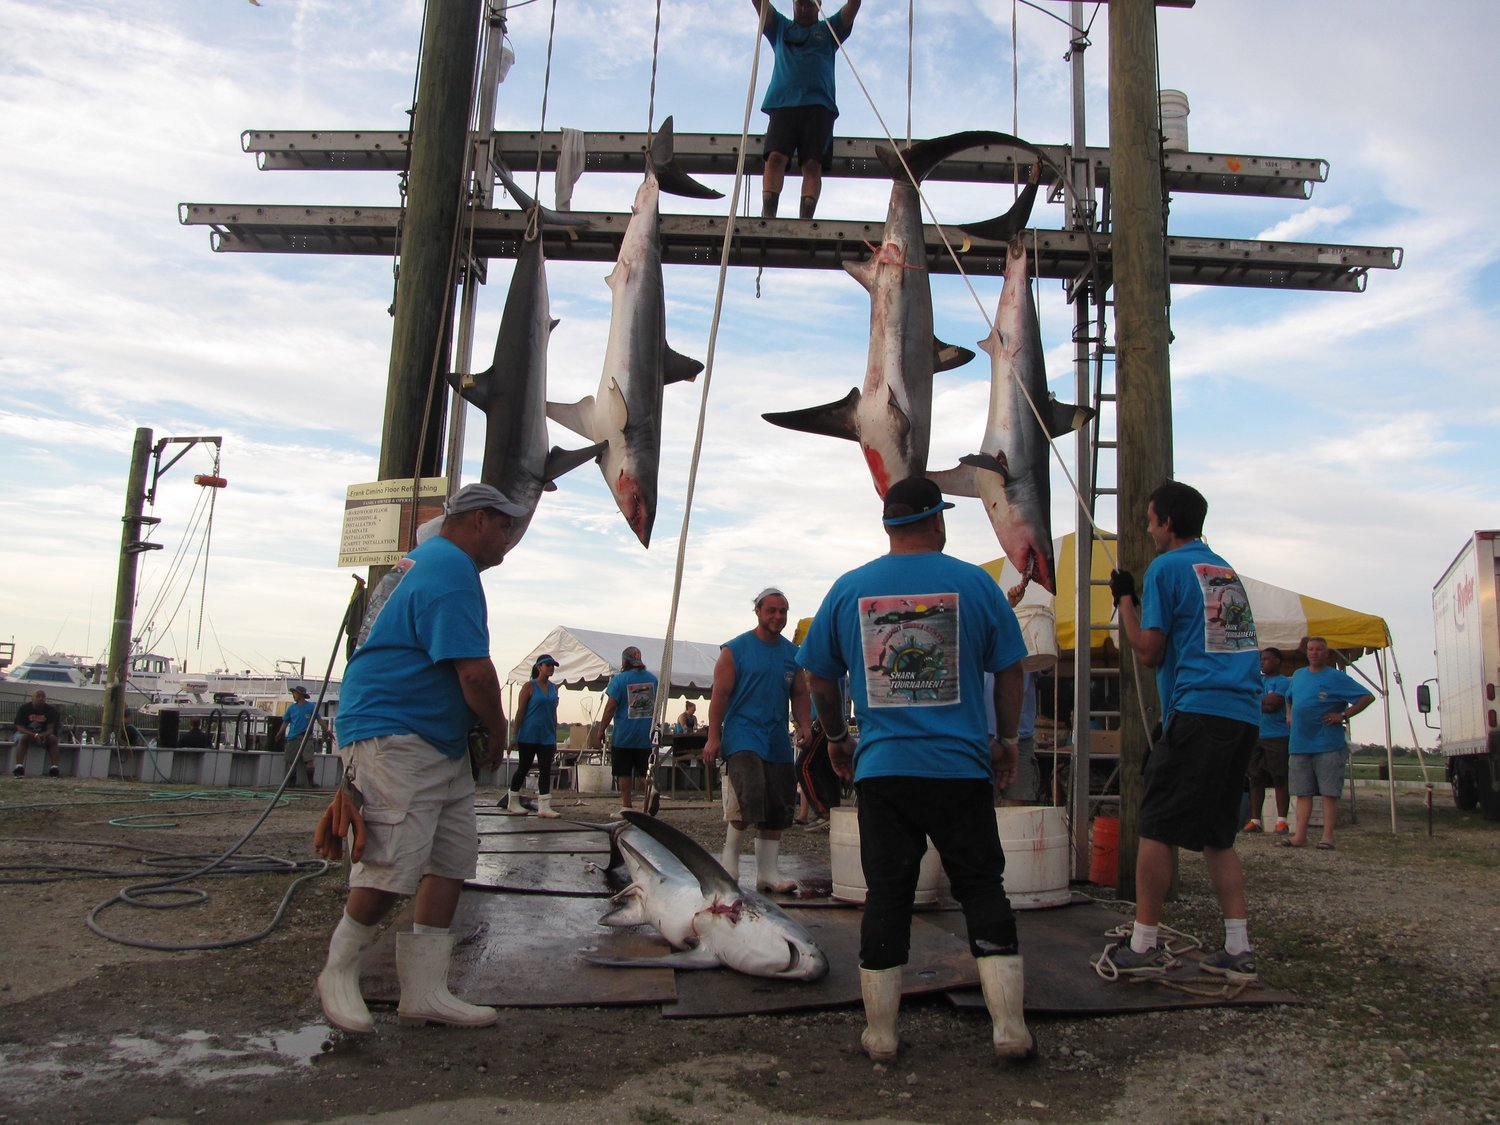 Tournament volunteers will start weighing and measuring sharks as the boats arrive at the Guy Lombardo Marina at 6 p.m. on June 15.